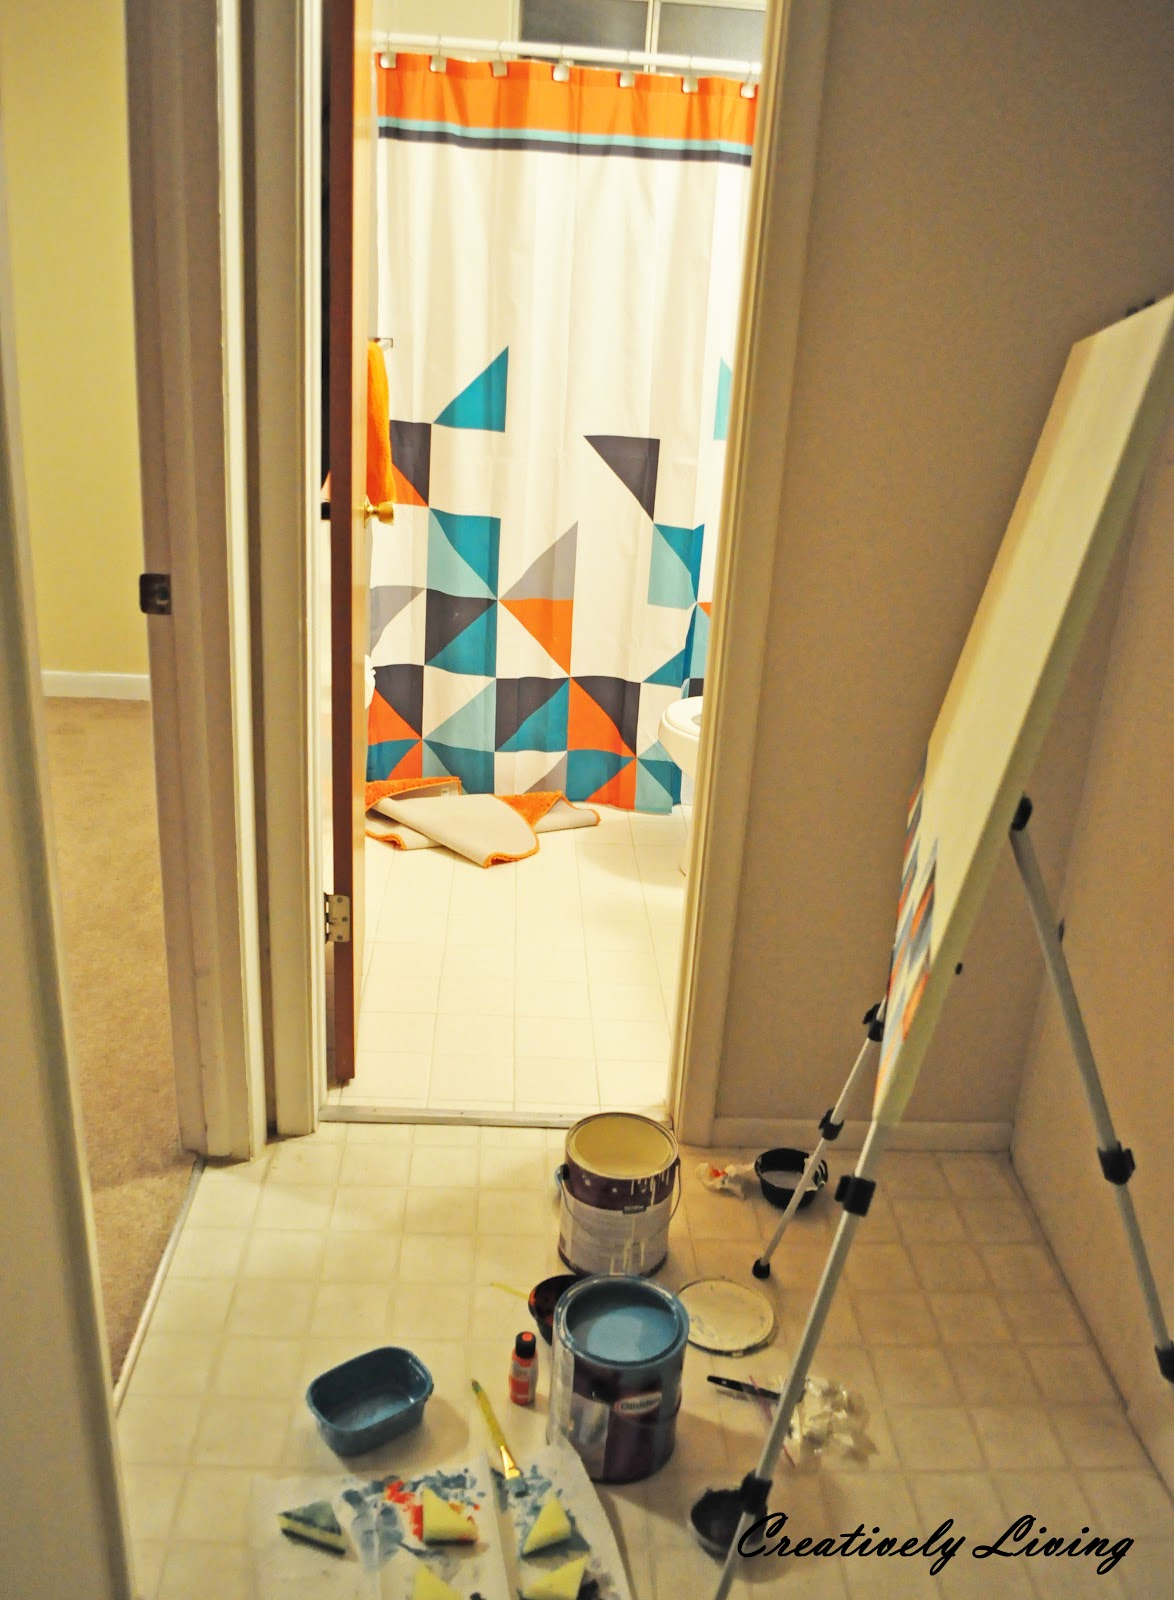 DIY Geometric Wall Art (nursery project #1) - Creatively Living Blog